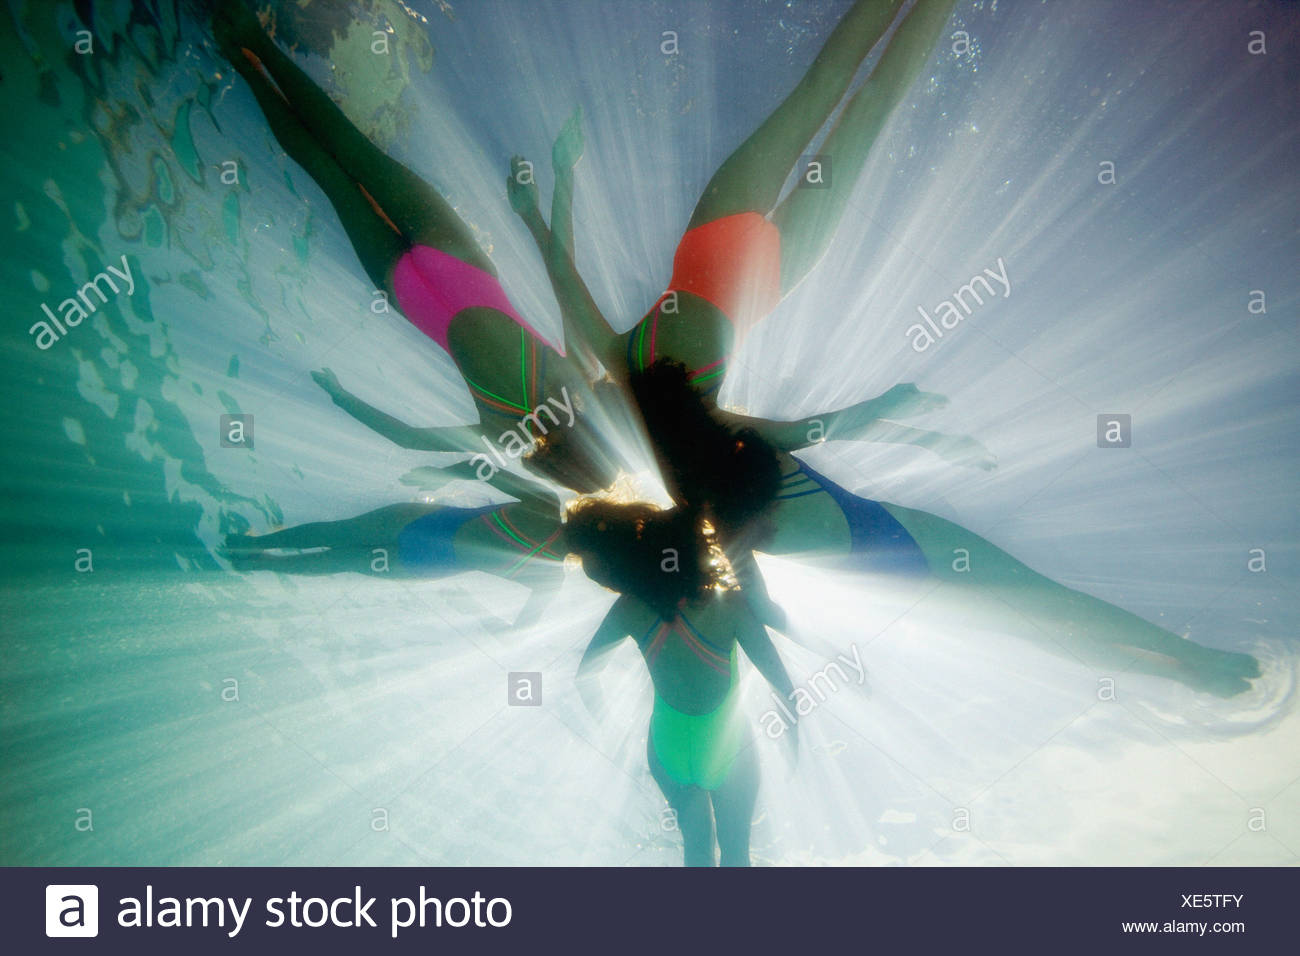 Underwater shot of synchronised swimmers - Stock Image